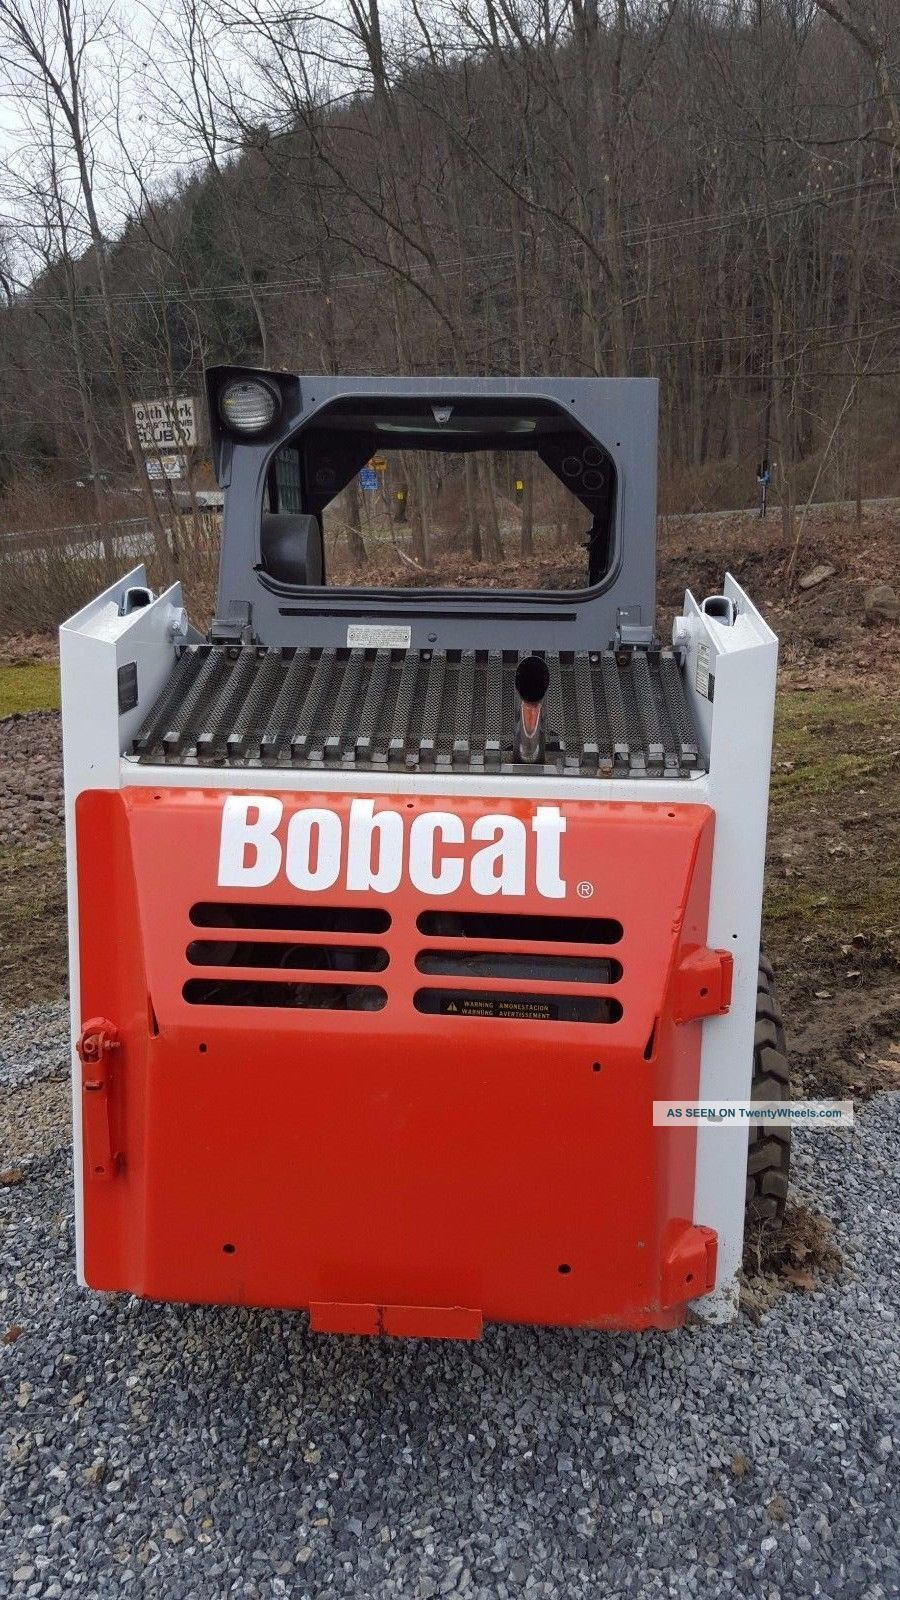 Bobcat Mowers Paint Related Keywords & Suggestions - Bobcat